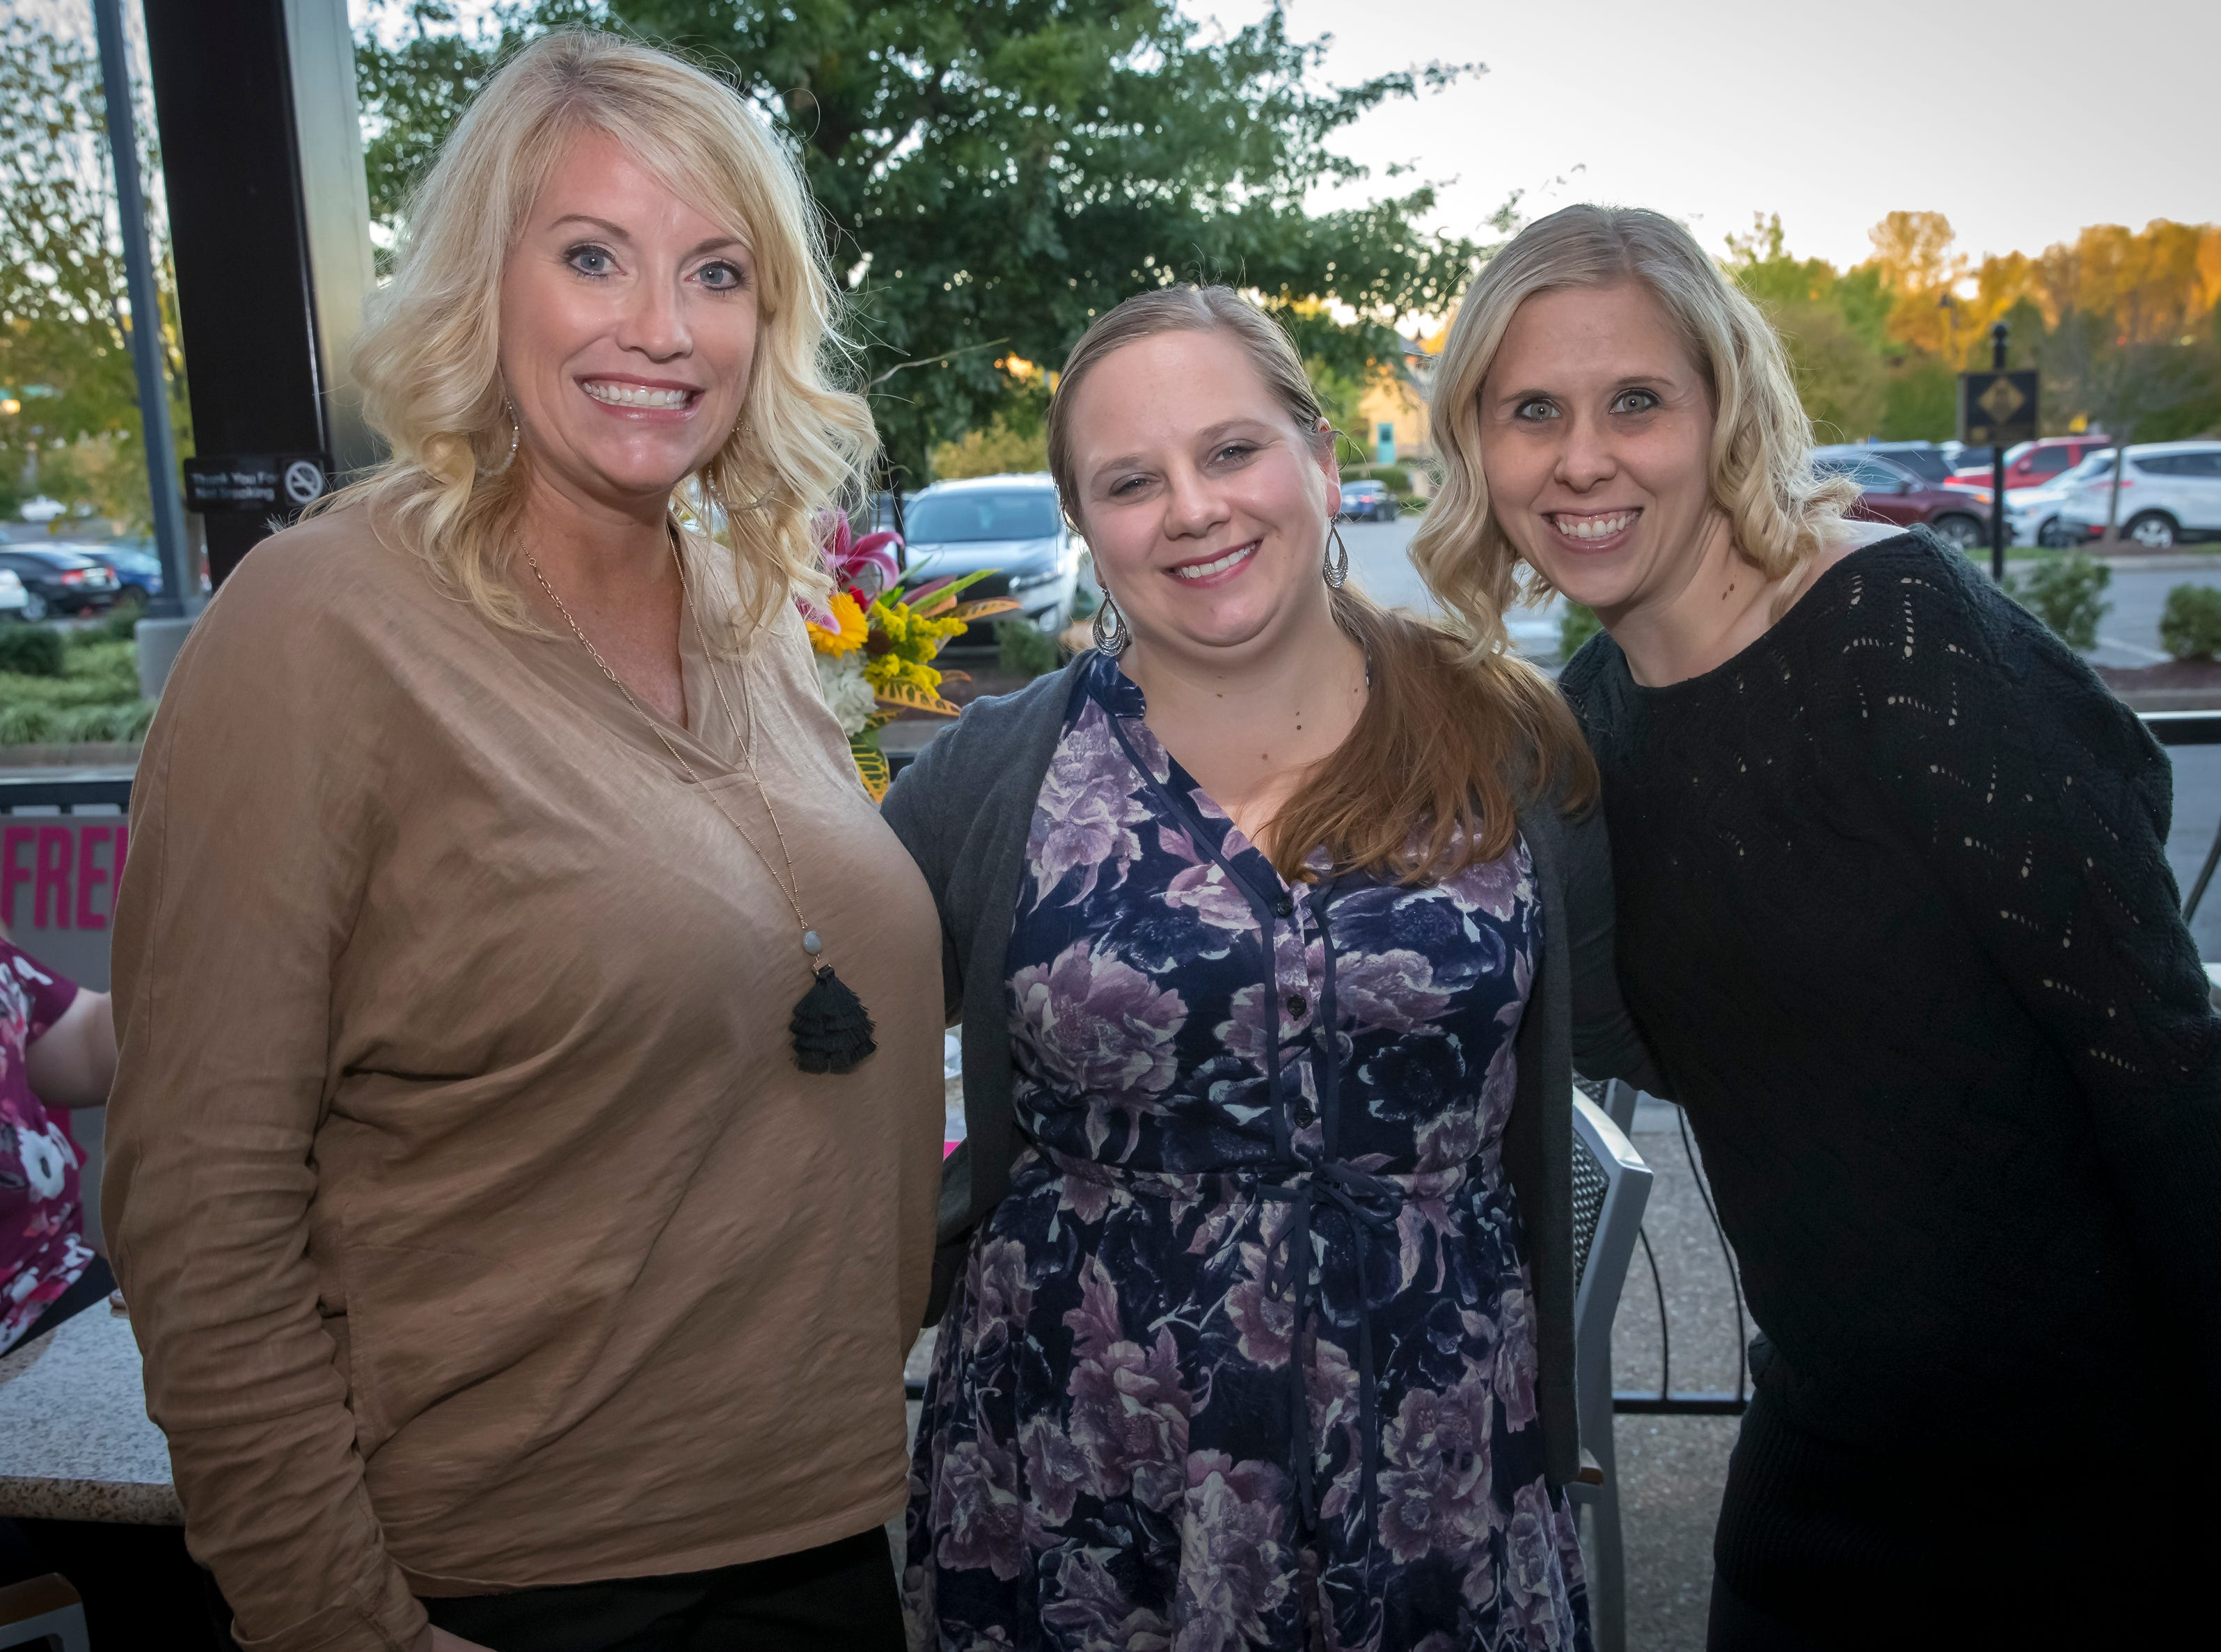 Britton Fraley, Sarah Clark and Shalelyn Smith at the Murfreesboro Magazine Most Beautiful People event held at Bar Louie.